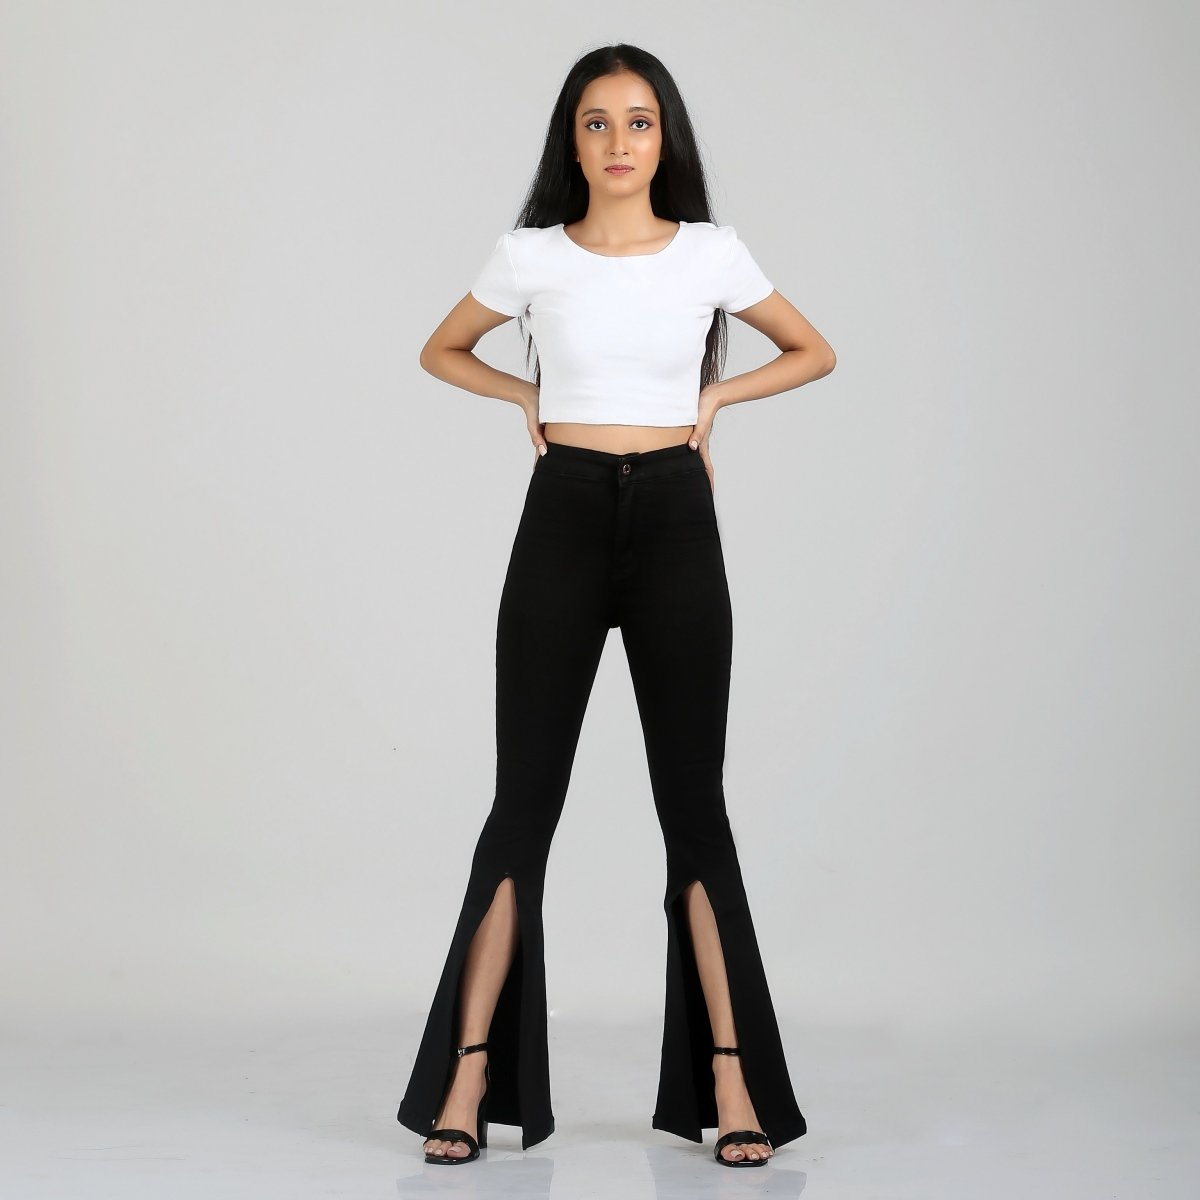 Peek-a-Boo Black Bell Bottom High Waist Jeans by Madish